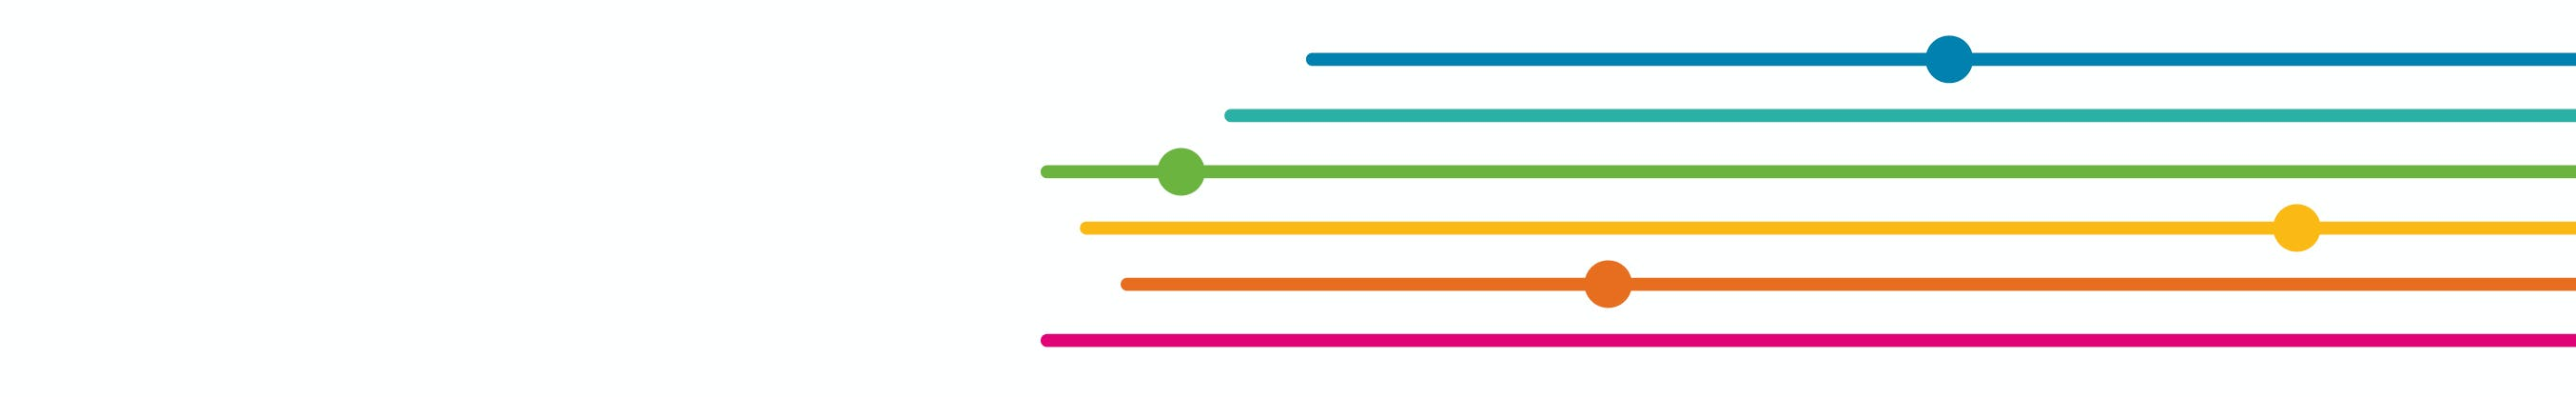 Six straight coloured lines coming in from the right and ending at different positions along the line.  Most lines show a circle node at a point along the line reminiscent of a bust stop along a bus route